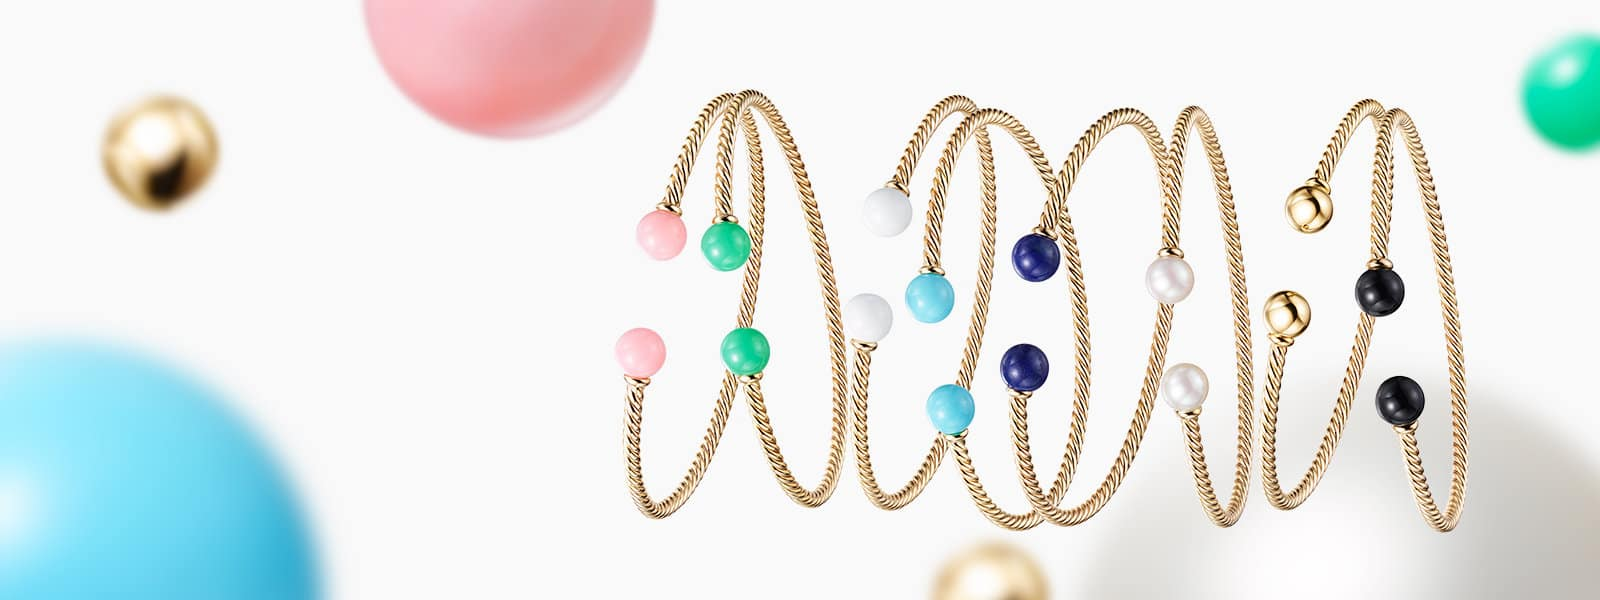 A horizontal stack of six David Yurman Solari bracelets in 18K yellow gold with colored gemstones, all suspended above large spheres of colored gemstones on a white background.